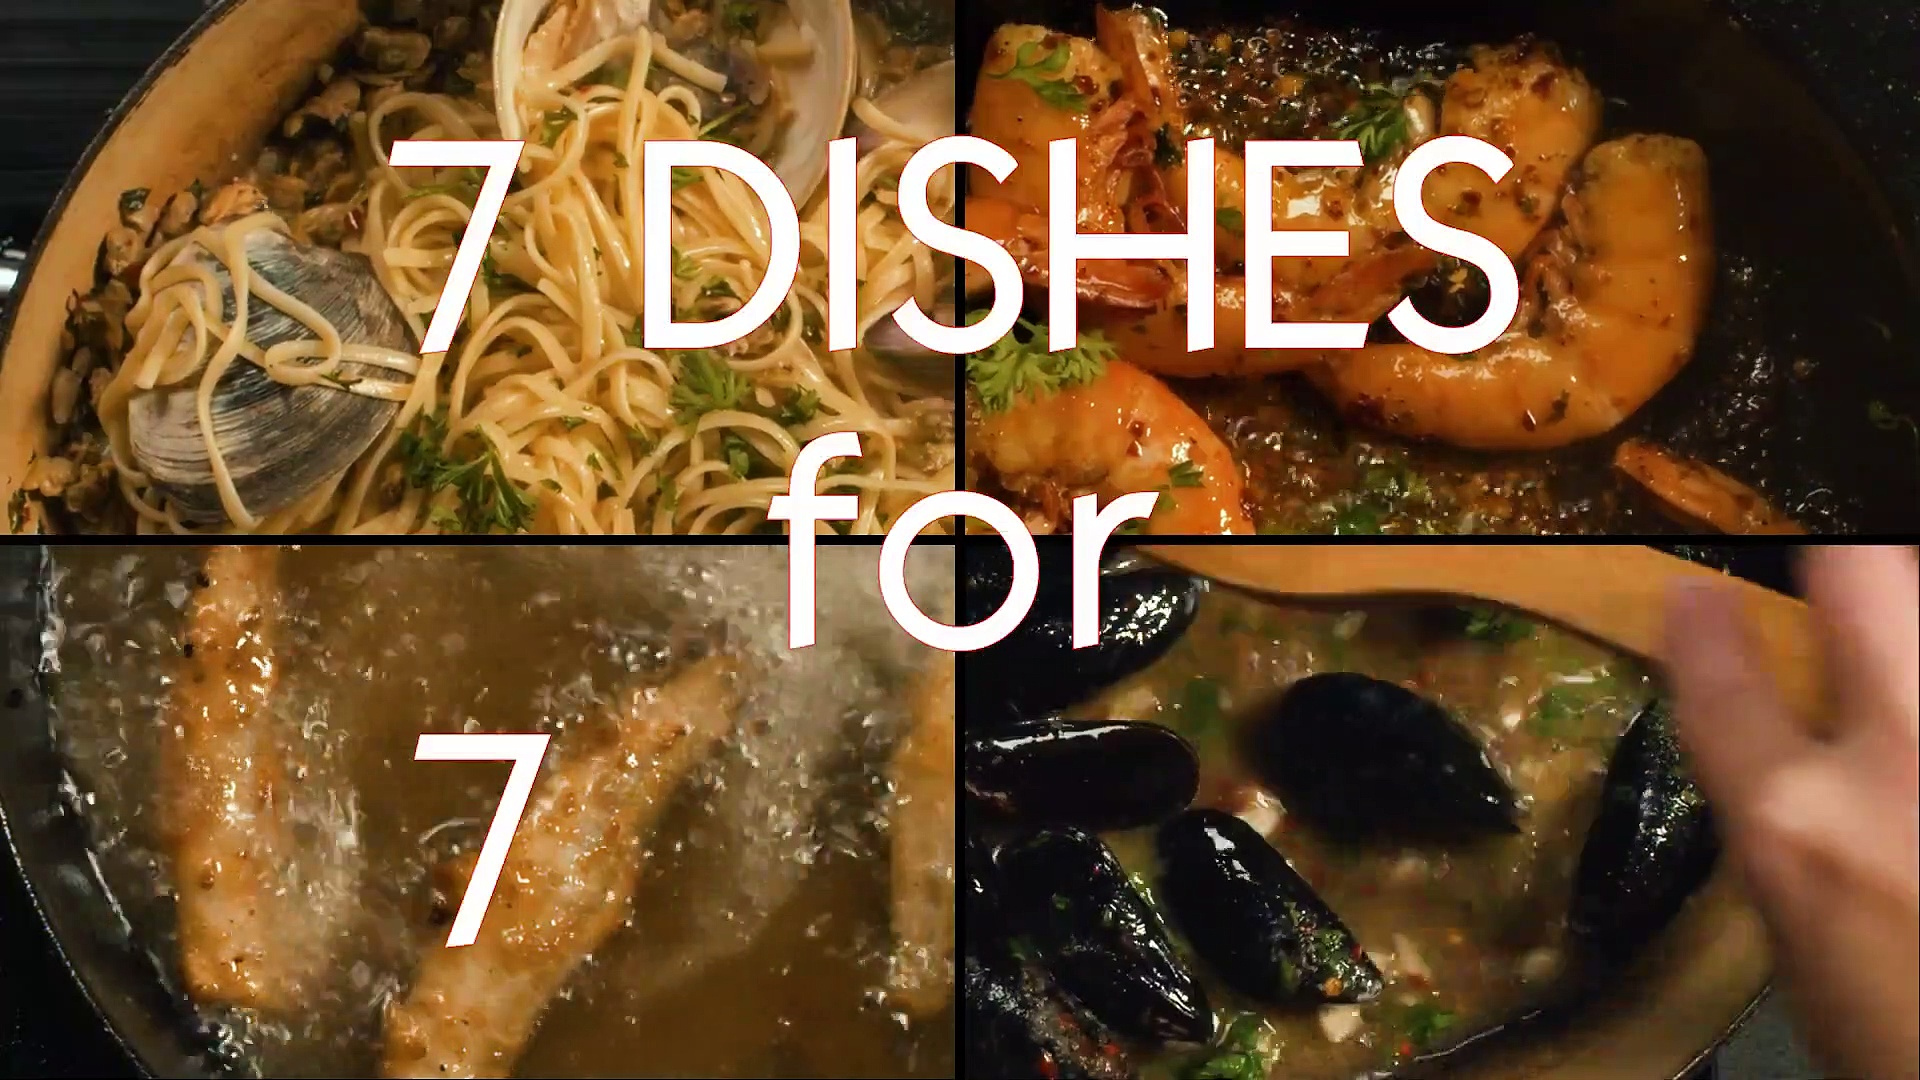 FEAST OF THE SEVEN FISHES movie – Spicy Shrimp